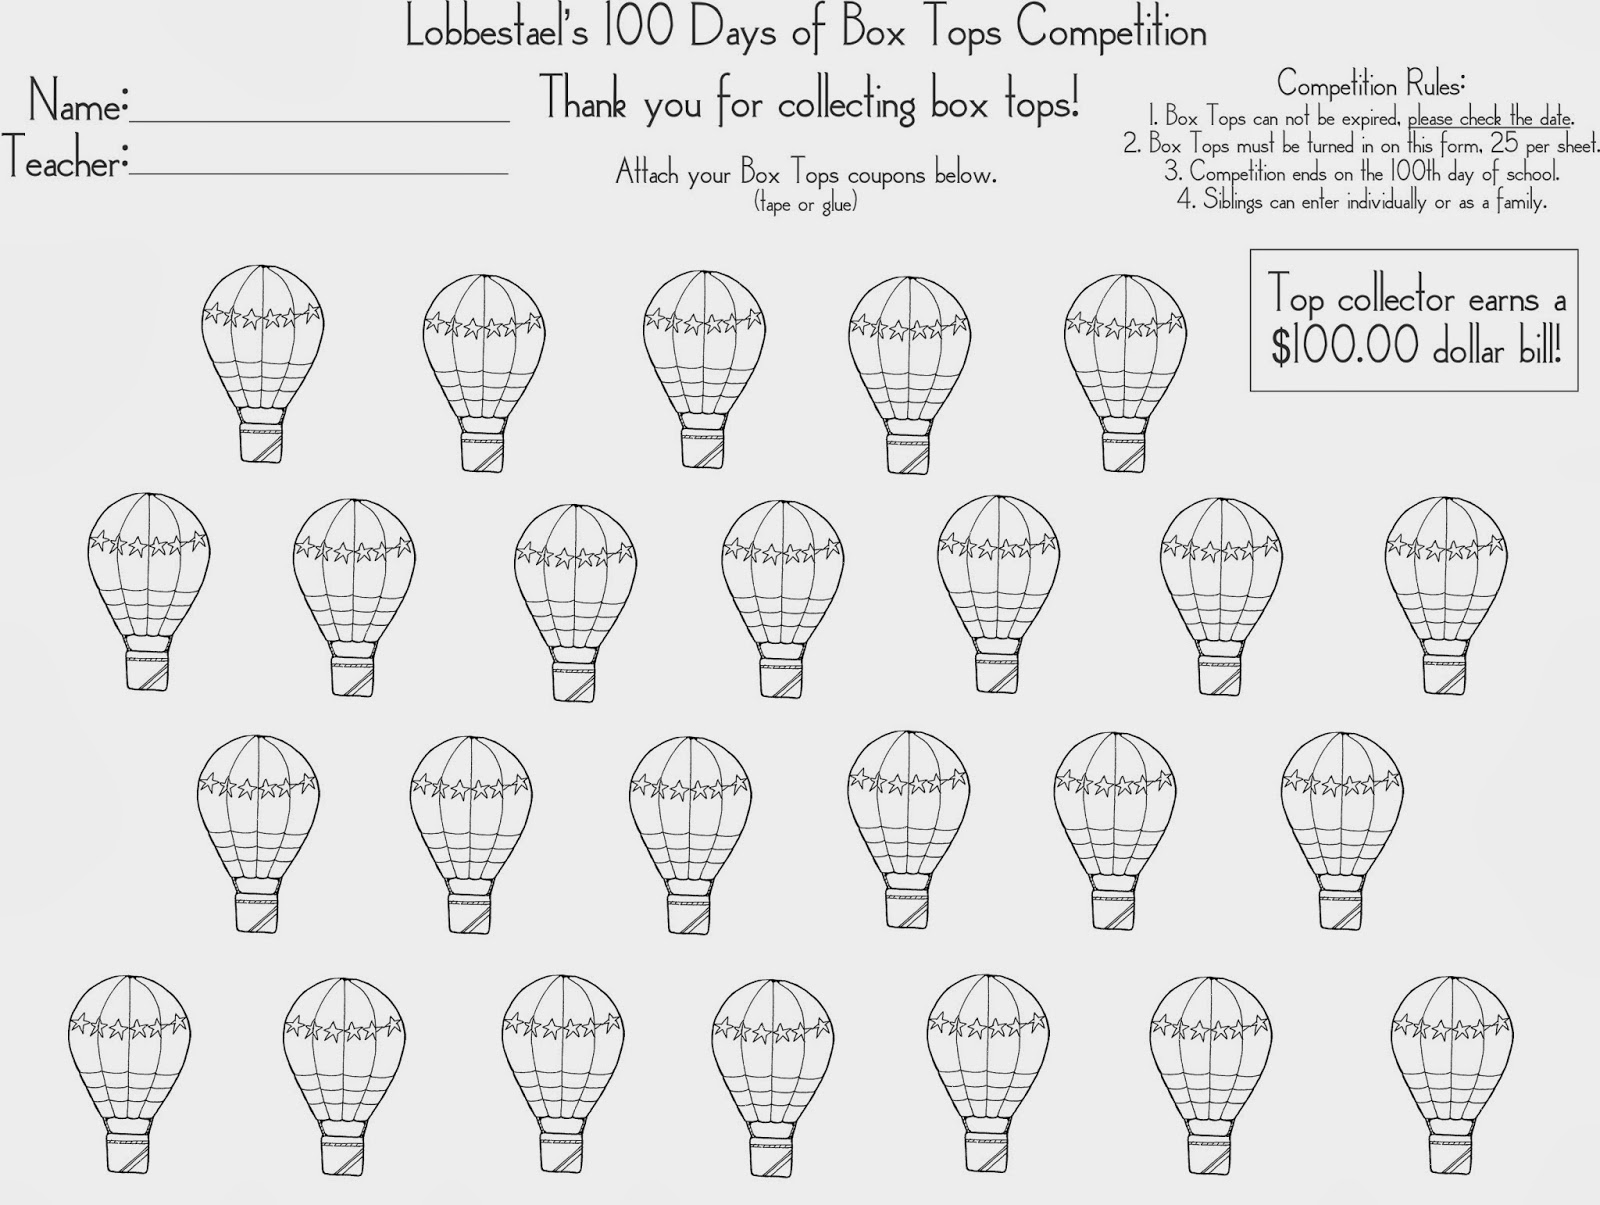 Lobbestael Ptc 100 Days Of Box Tops Competition